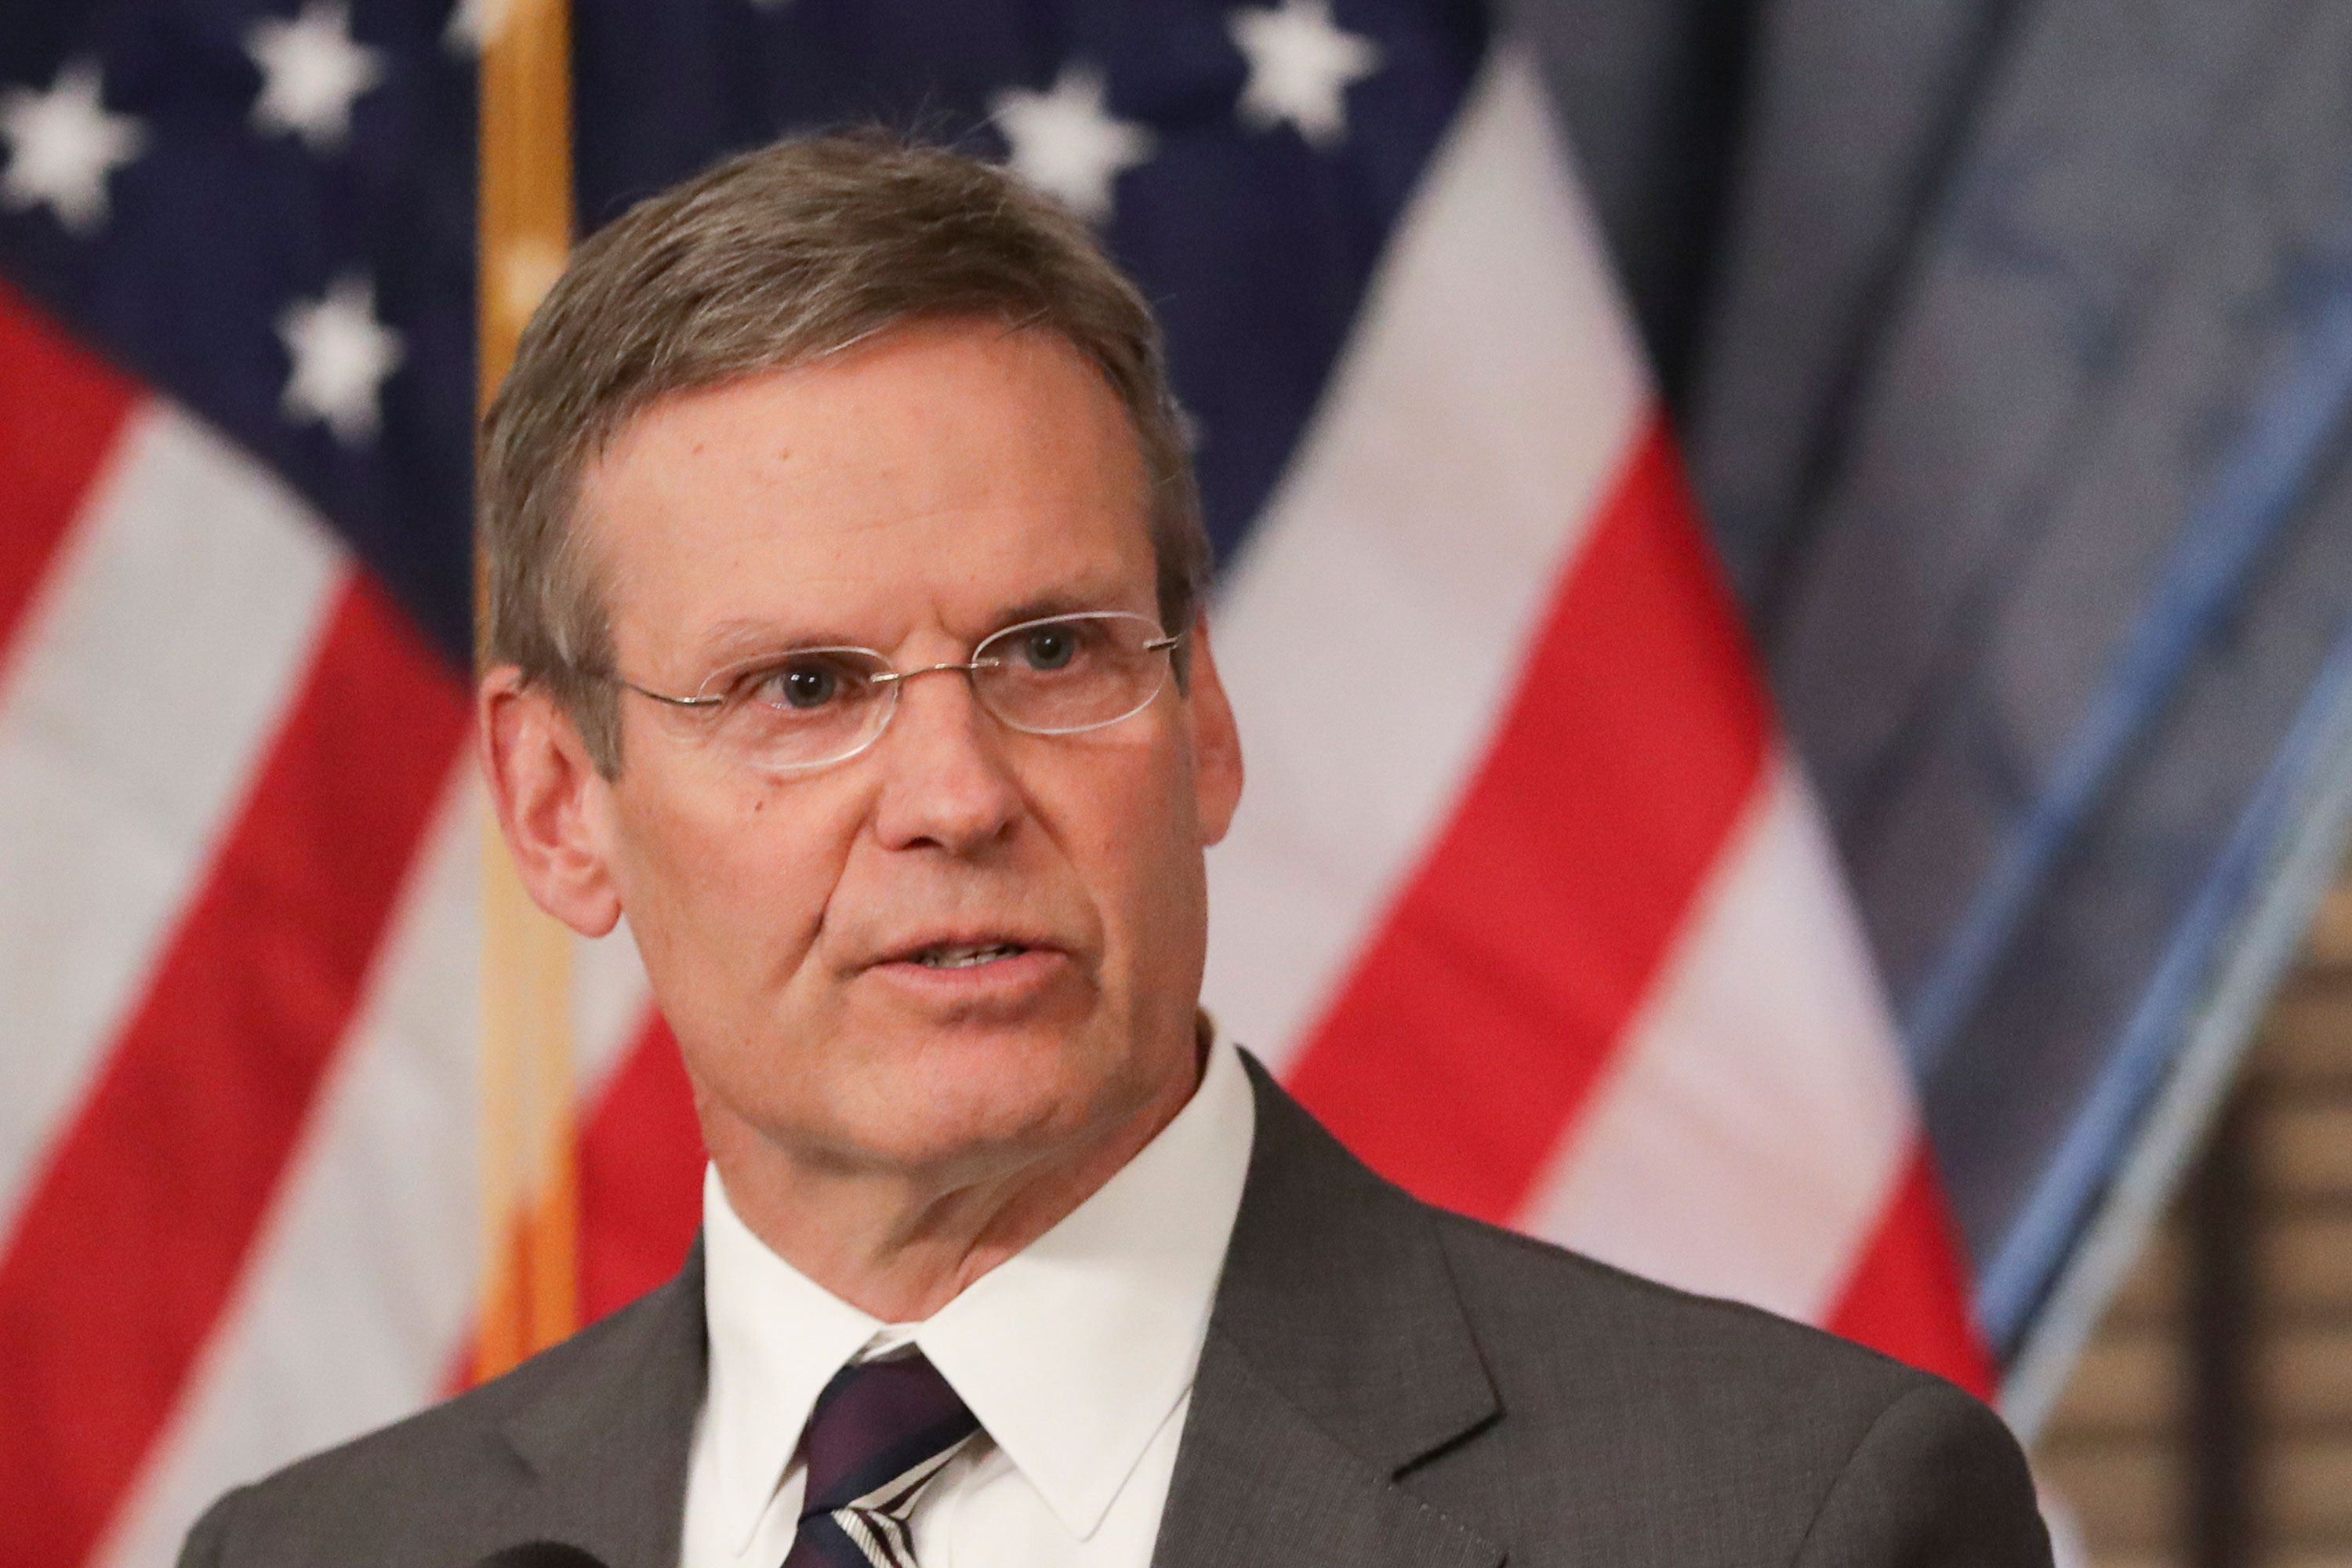 Tennessee Gov. Bill Lee answers questions concerning the state's response to the coronavirus during a news conference in Nashville, Tennessee on March 16.